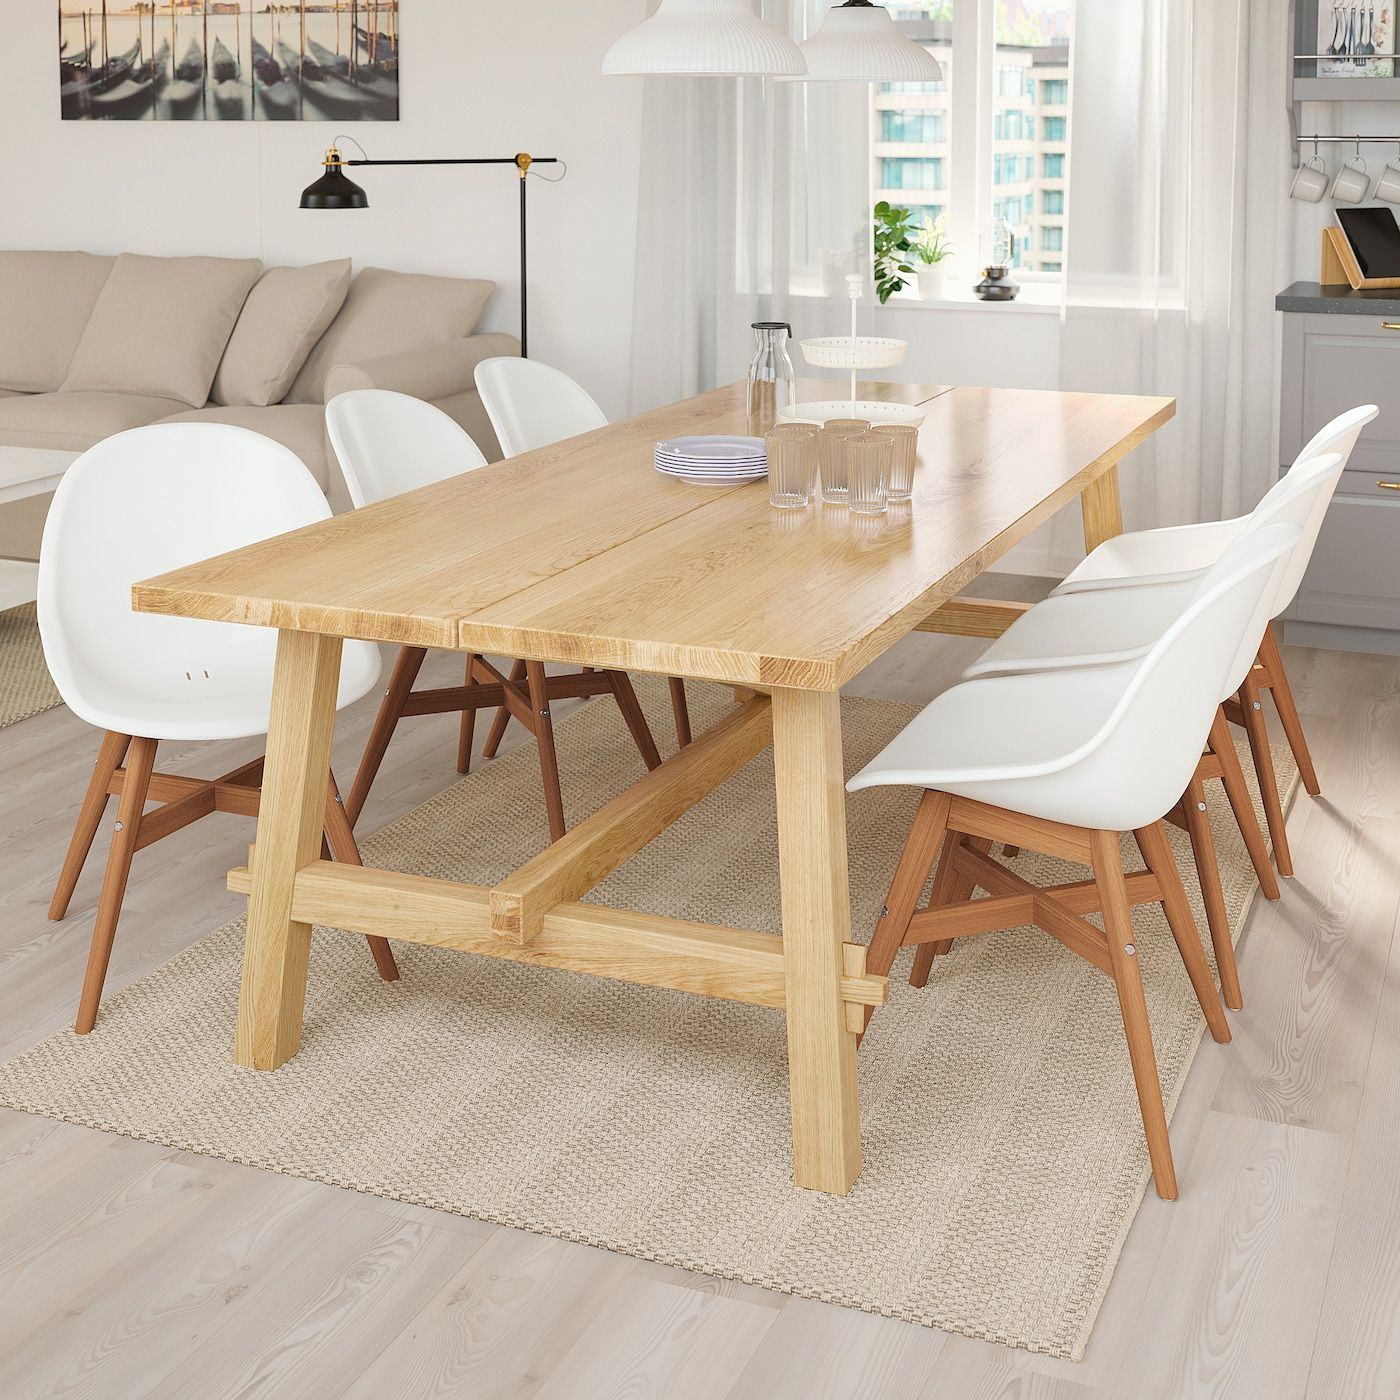 Mockelby Fanbyn Tisch Und 6 Stuhle Eiche Weiss Ikea Osterreich In 2020 Ikea Dining Table Set Dining Room Small Ikea Dining Table